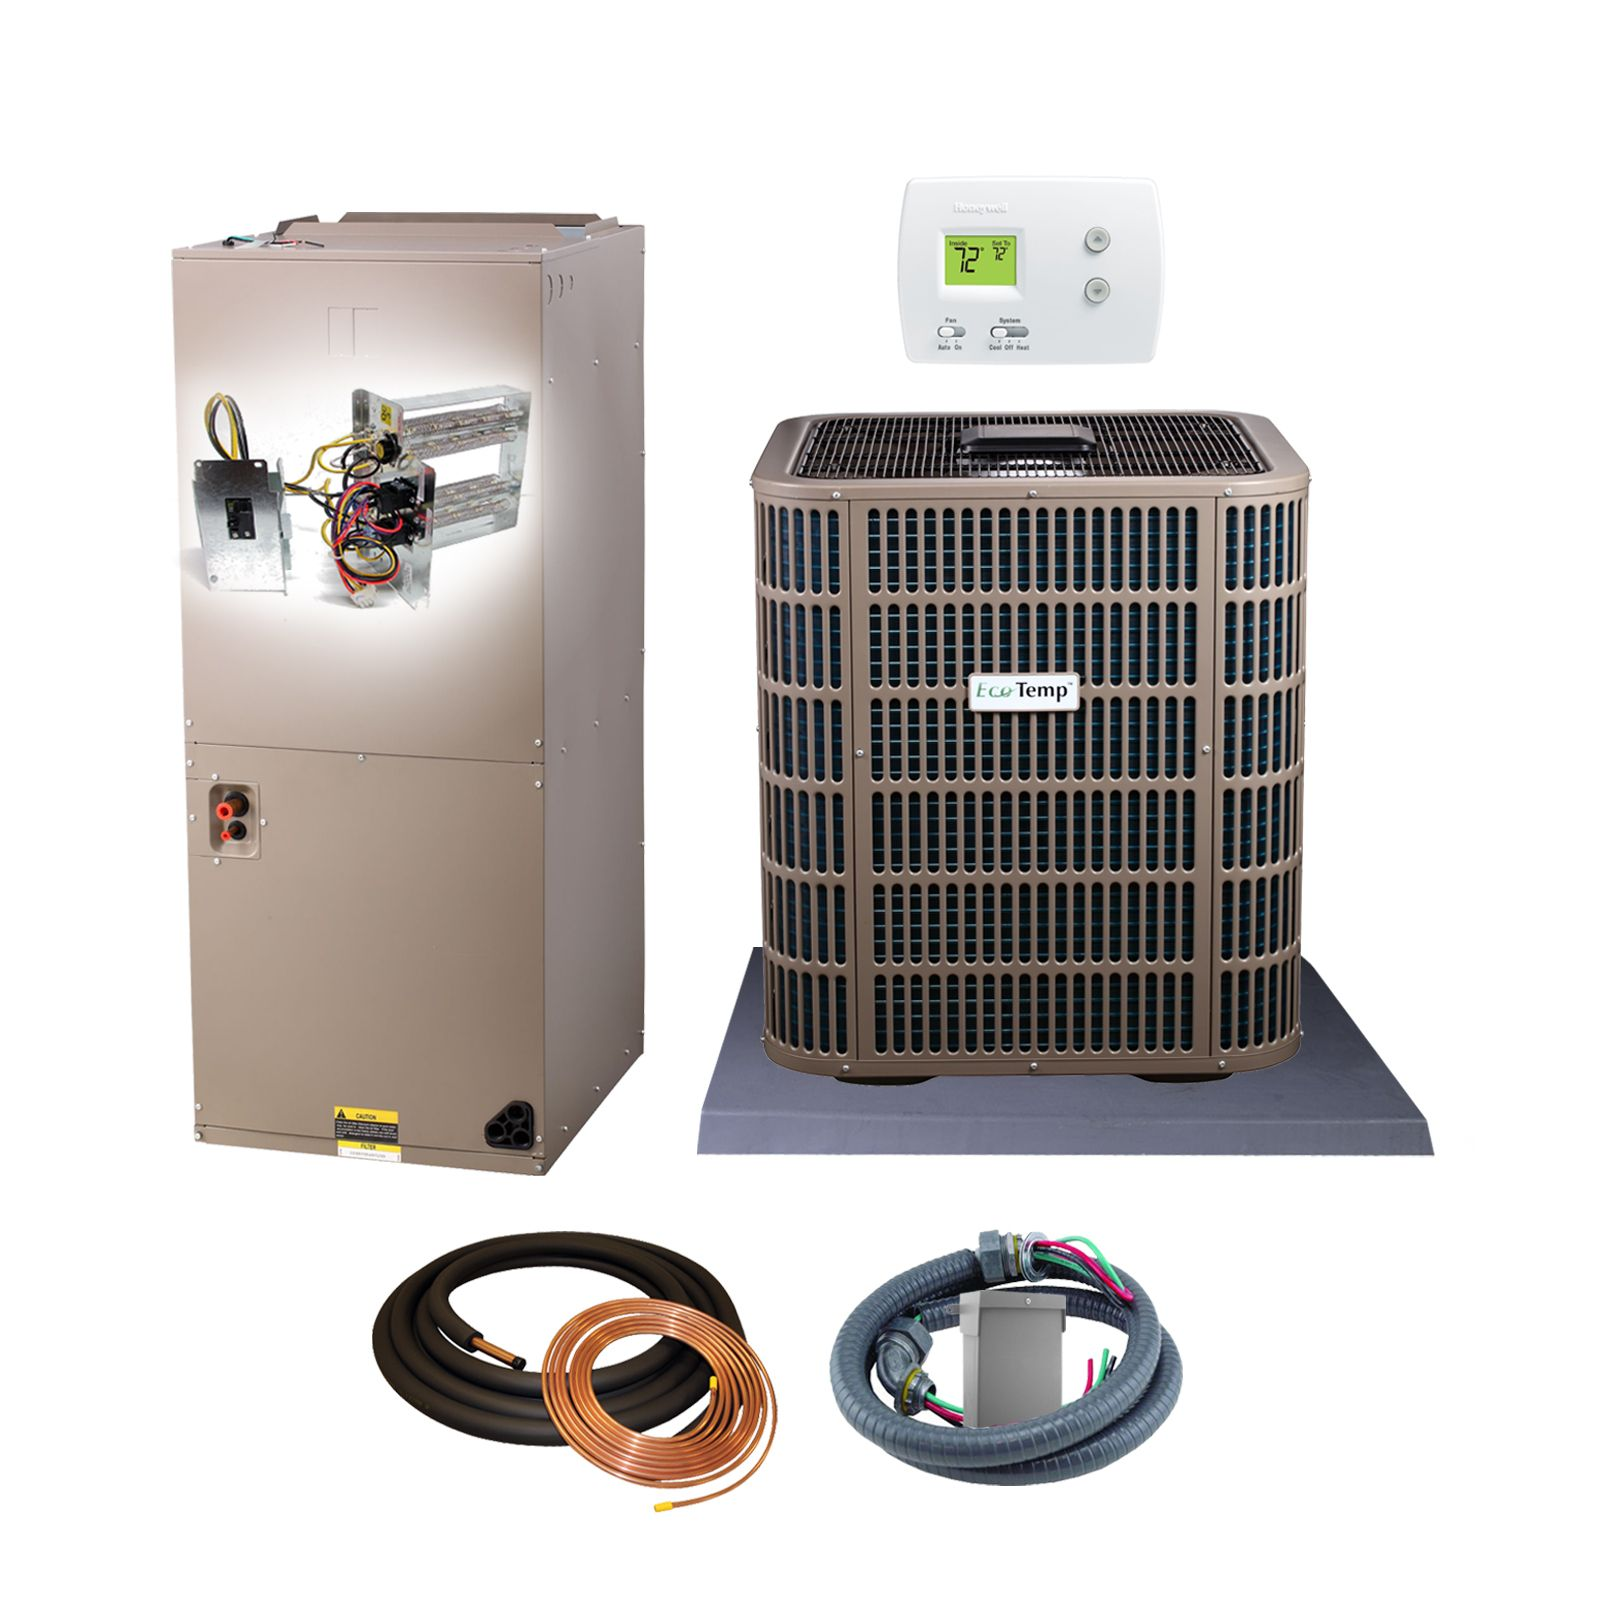 EcoTemp (AHRI 8270074) 4 Ton, 18.5 SEER/12.5 EER Monarch Series, Heat Pump Split System and Install Kit